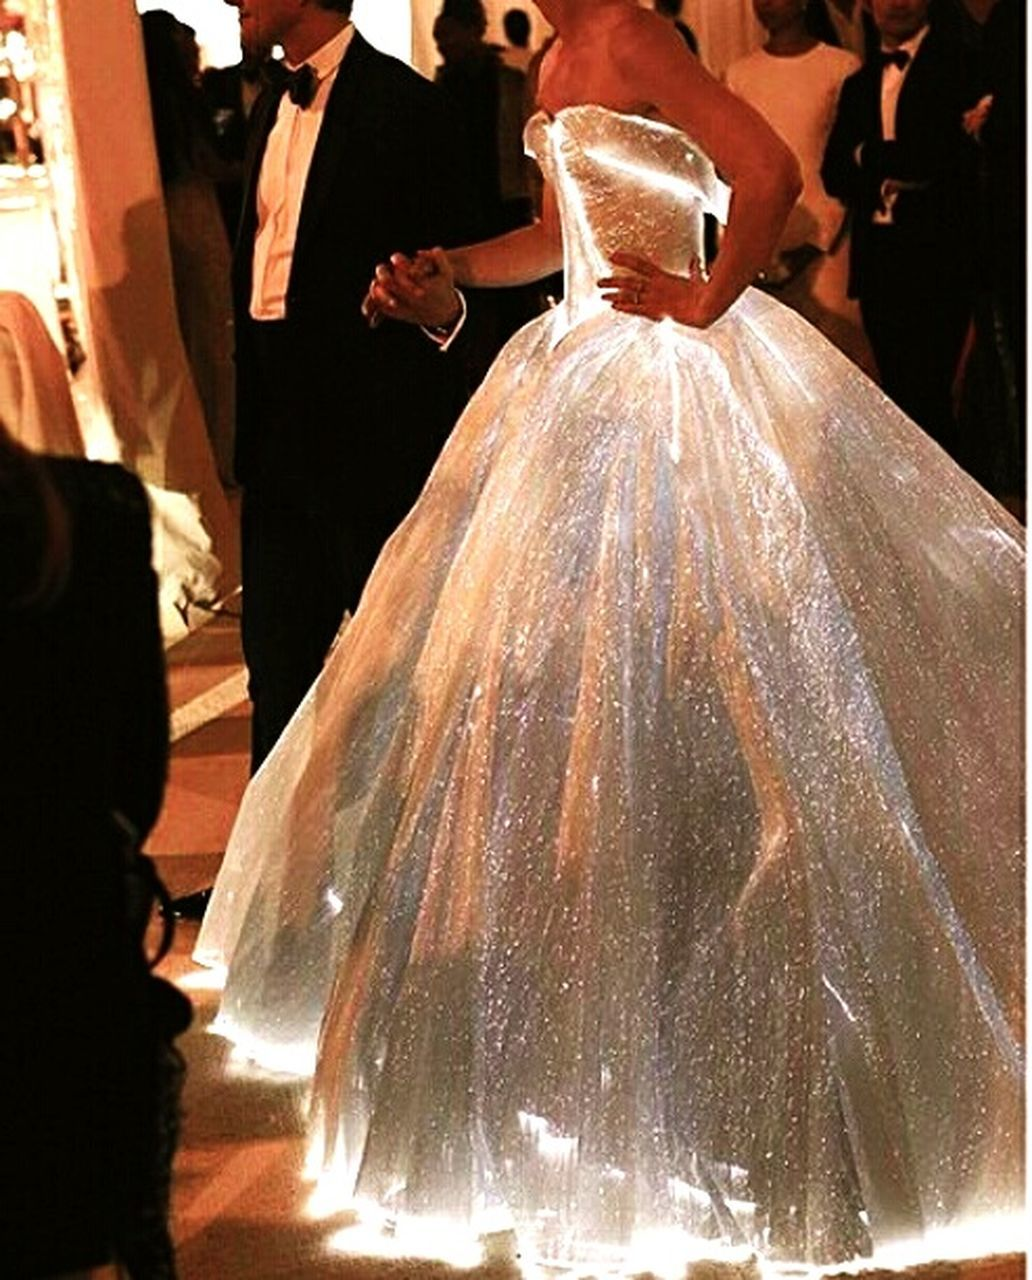 real people, bride, wedding dress, indoors, wedding, celebration, two people, well-dressed, women, night, adult, people, adults only